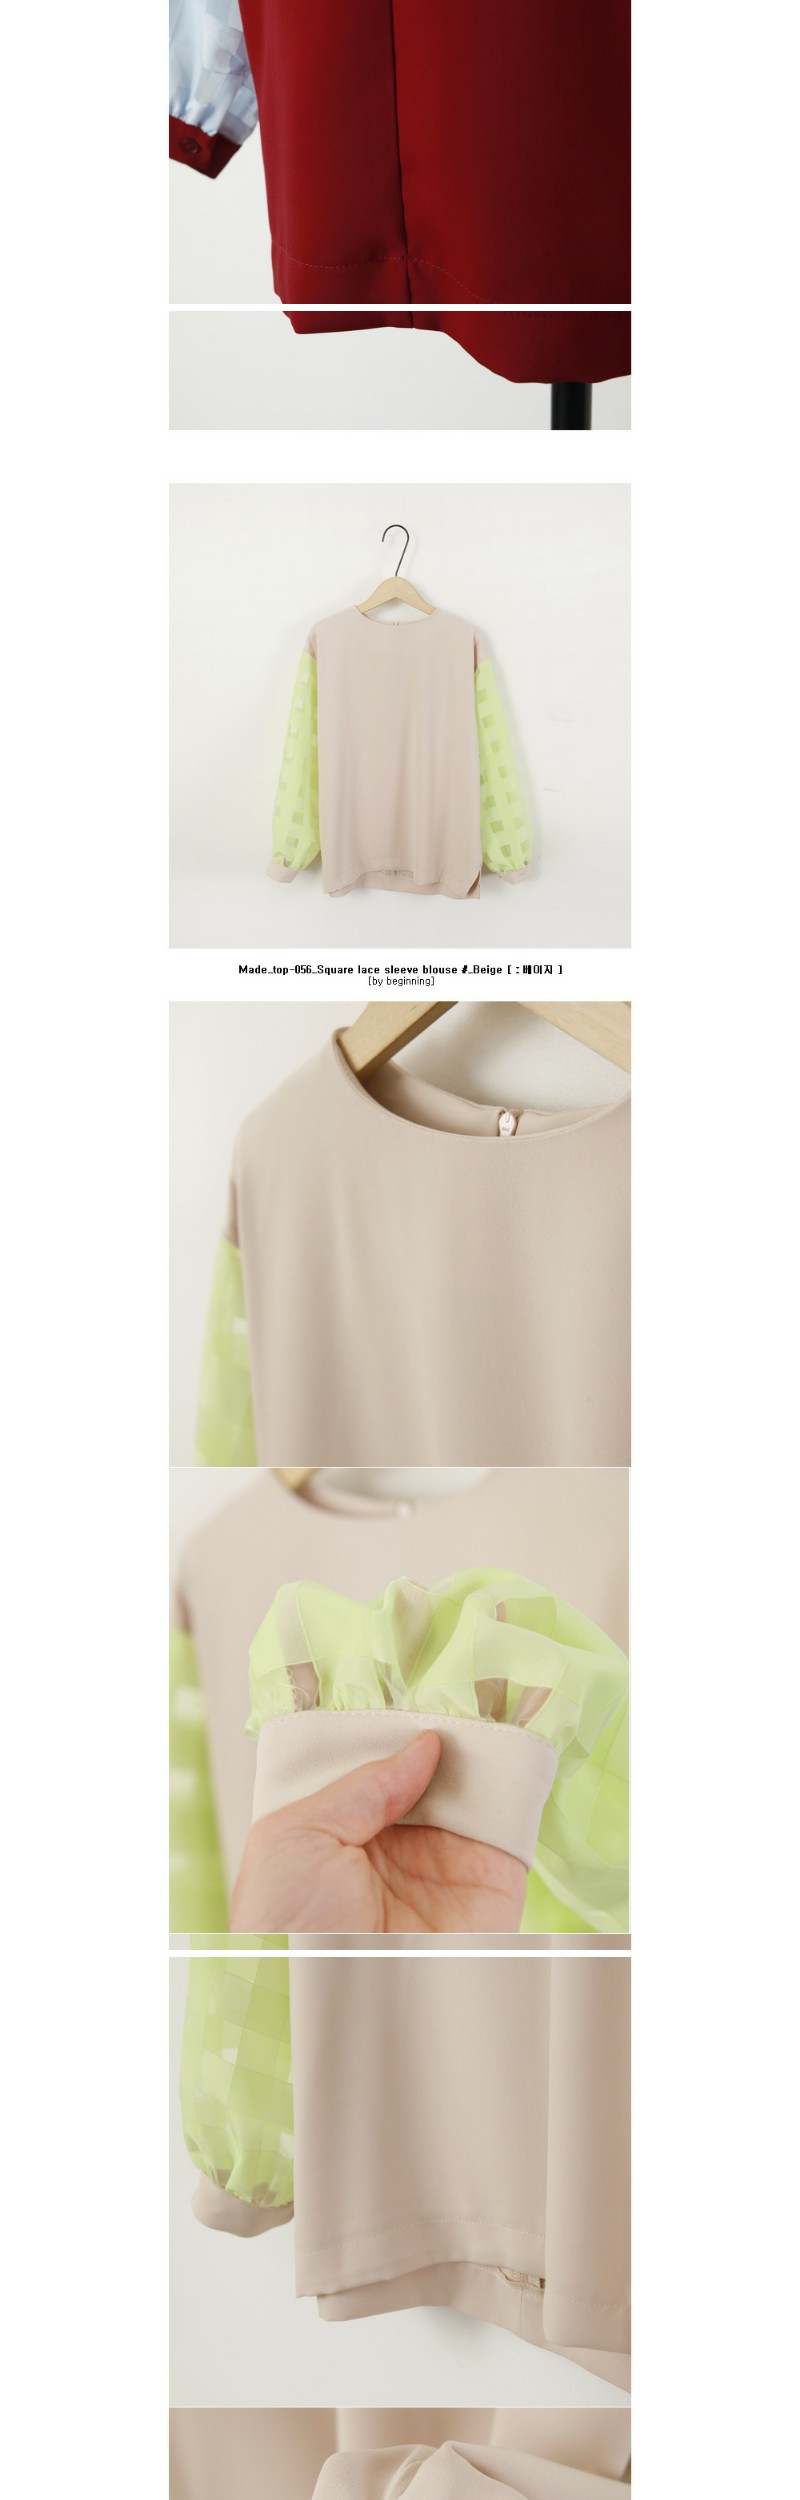 Made_top-056_Square lace sleeve blouse